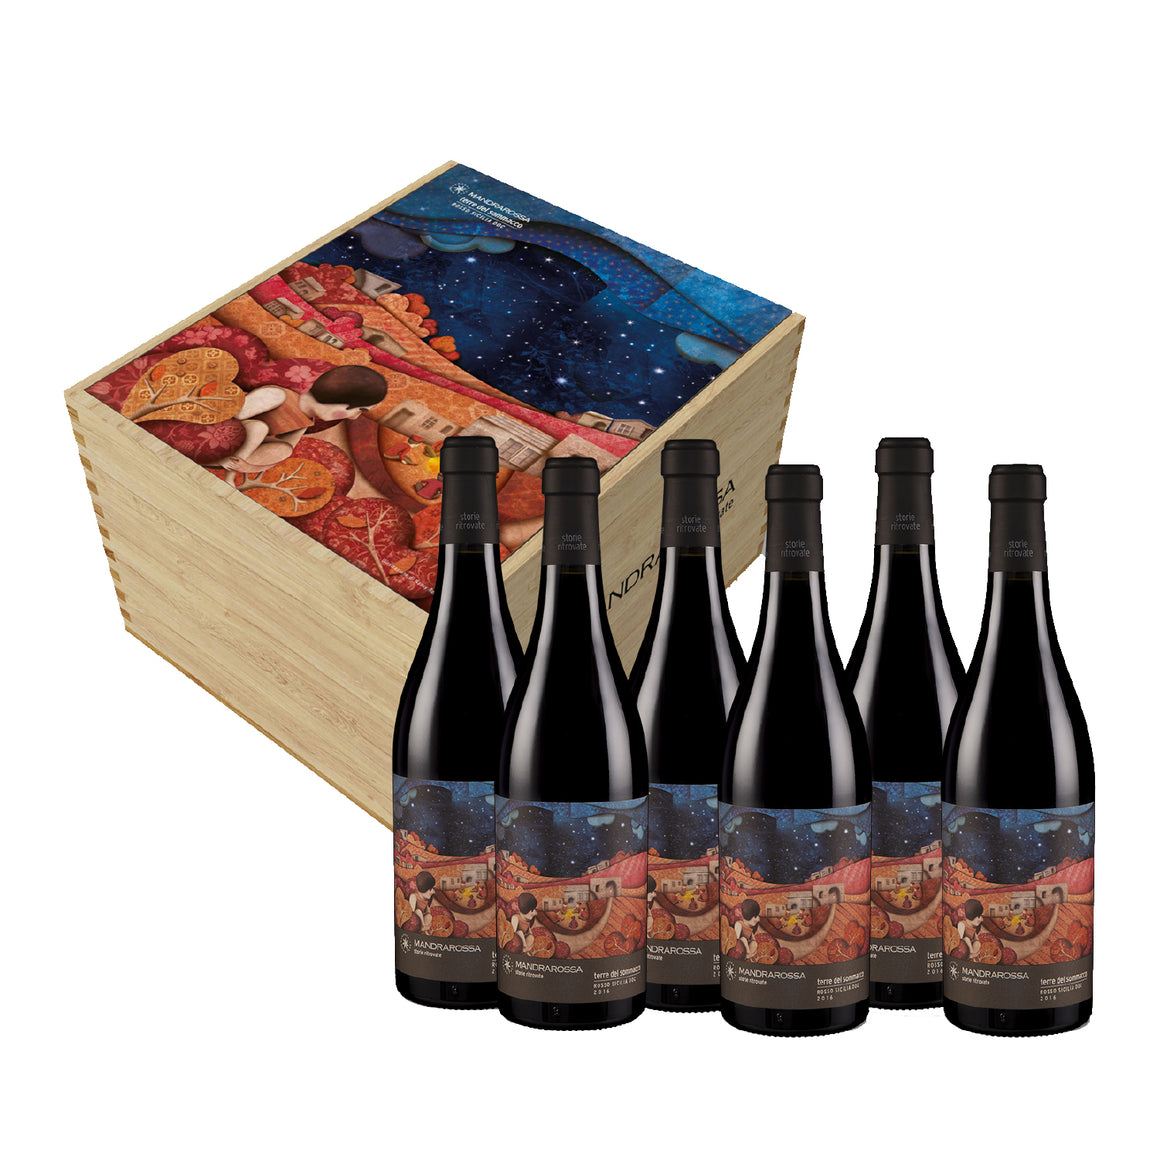 MANDRAROSSA TERRE DEL SOMMACCO 2016 - 6 BTLS GIFT SET WITH WOODEN BOX